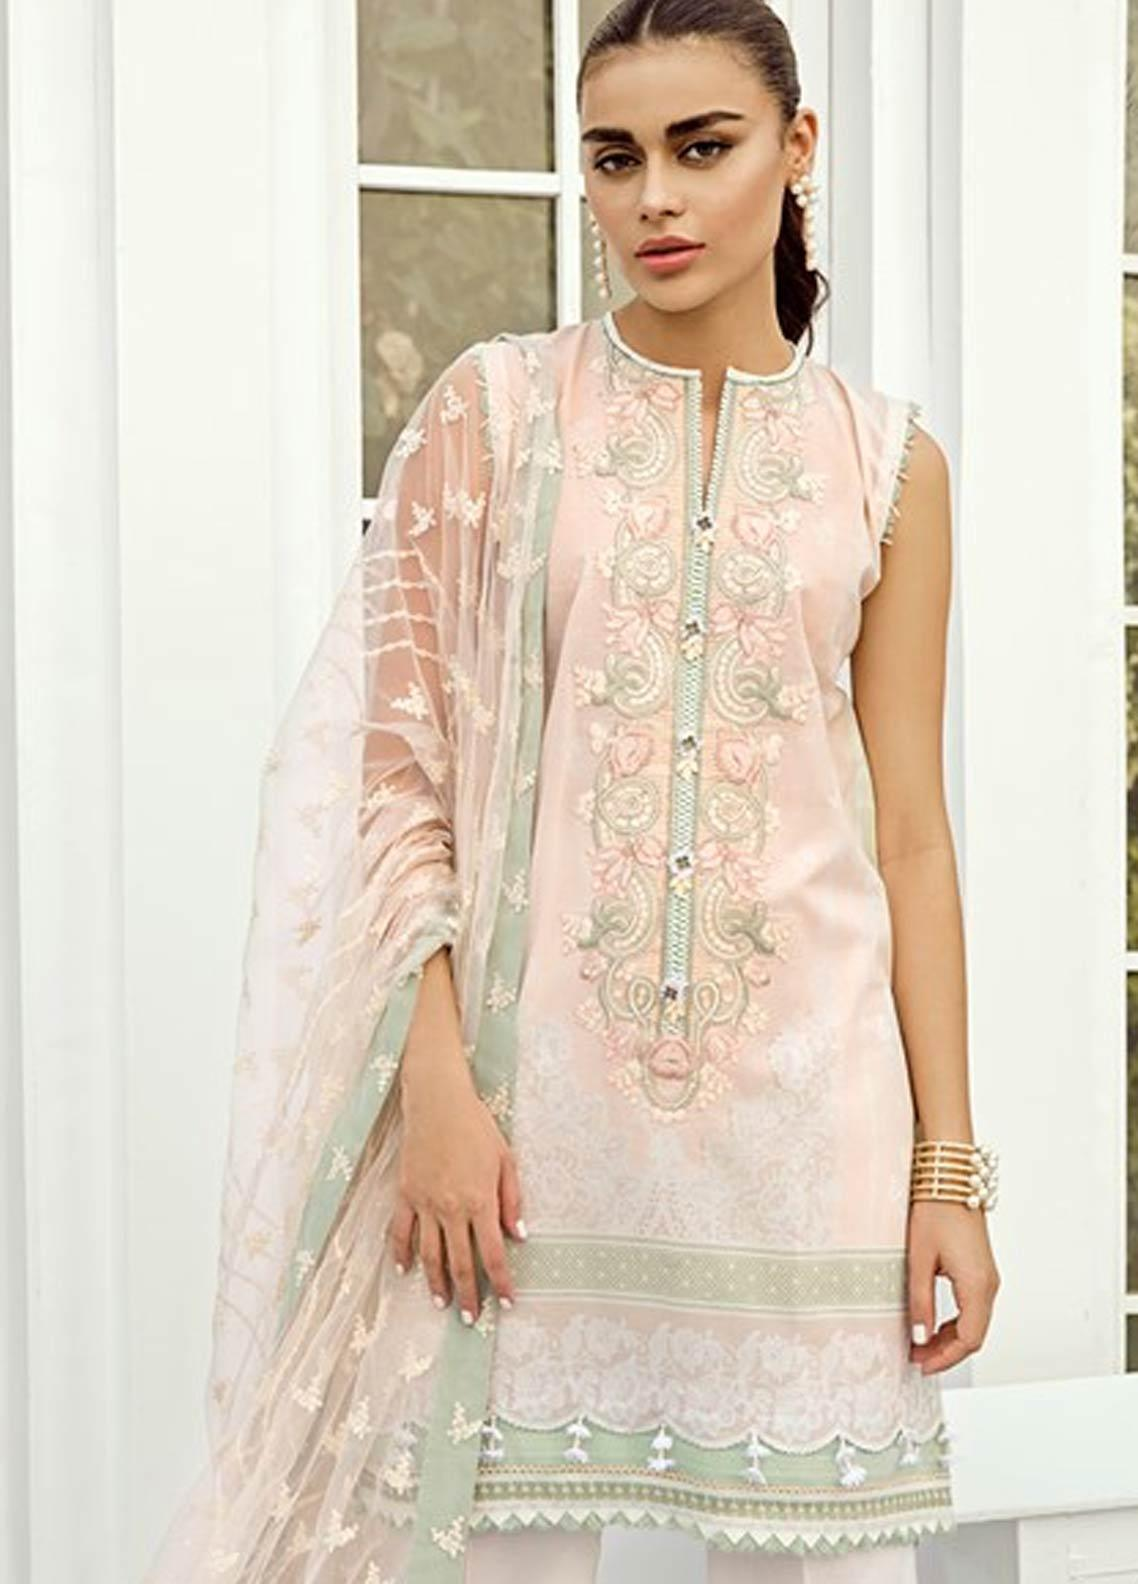 Baroque Embroidered Lawn Unstitched 3 Piece Suit FC19-L2 05 PEONY - Mid Summer Collection